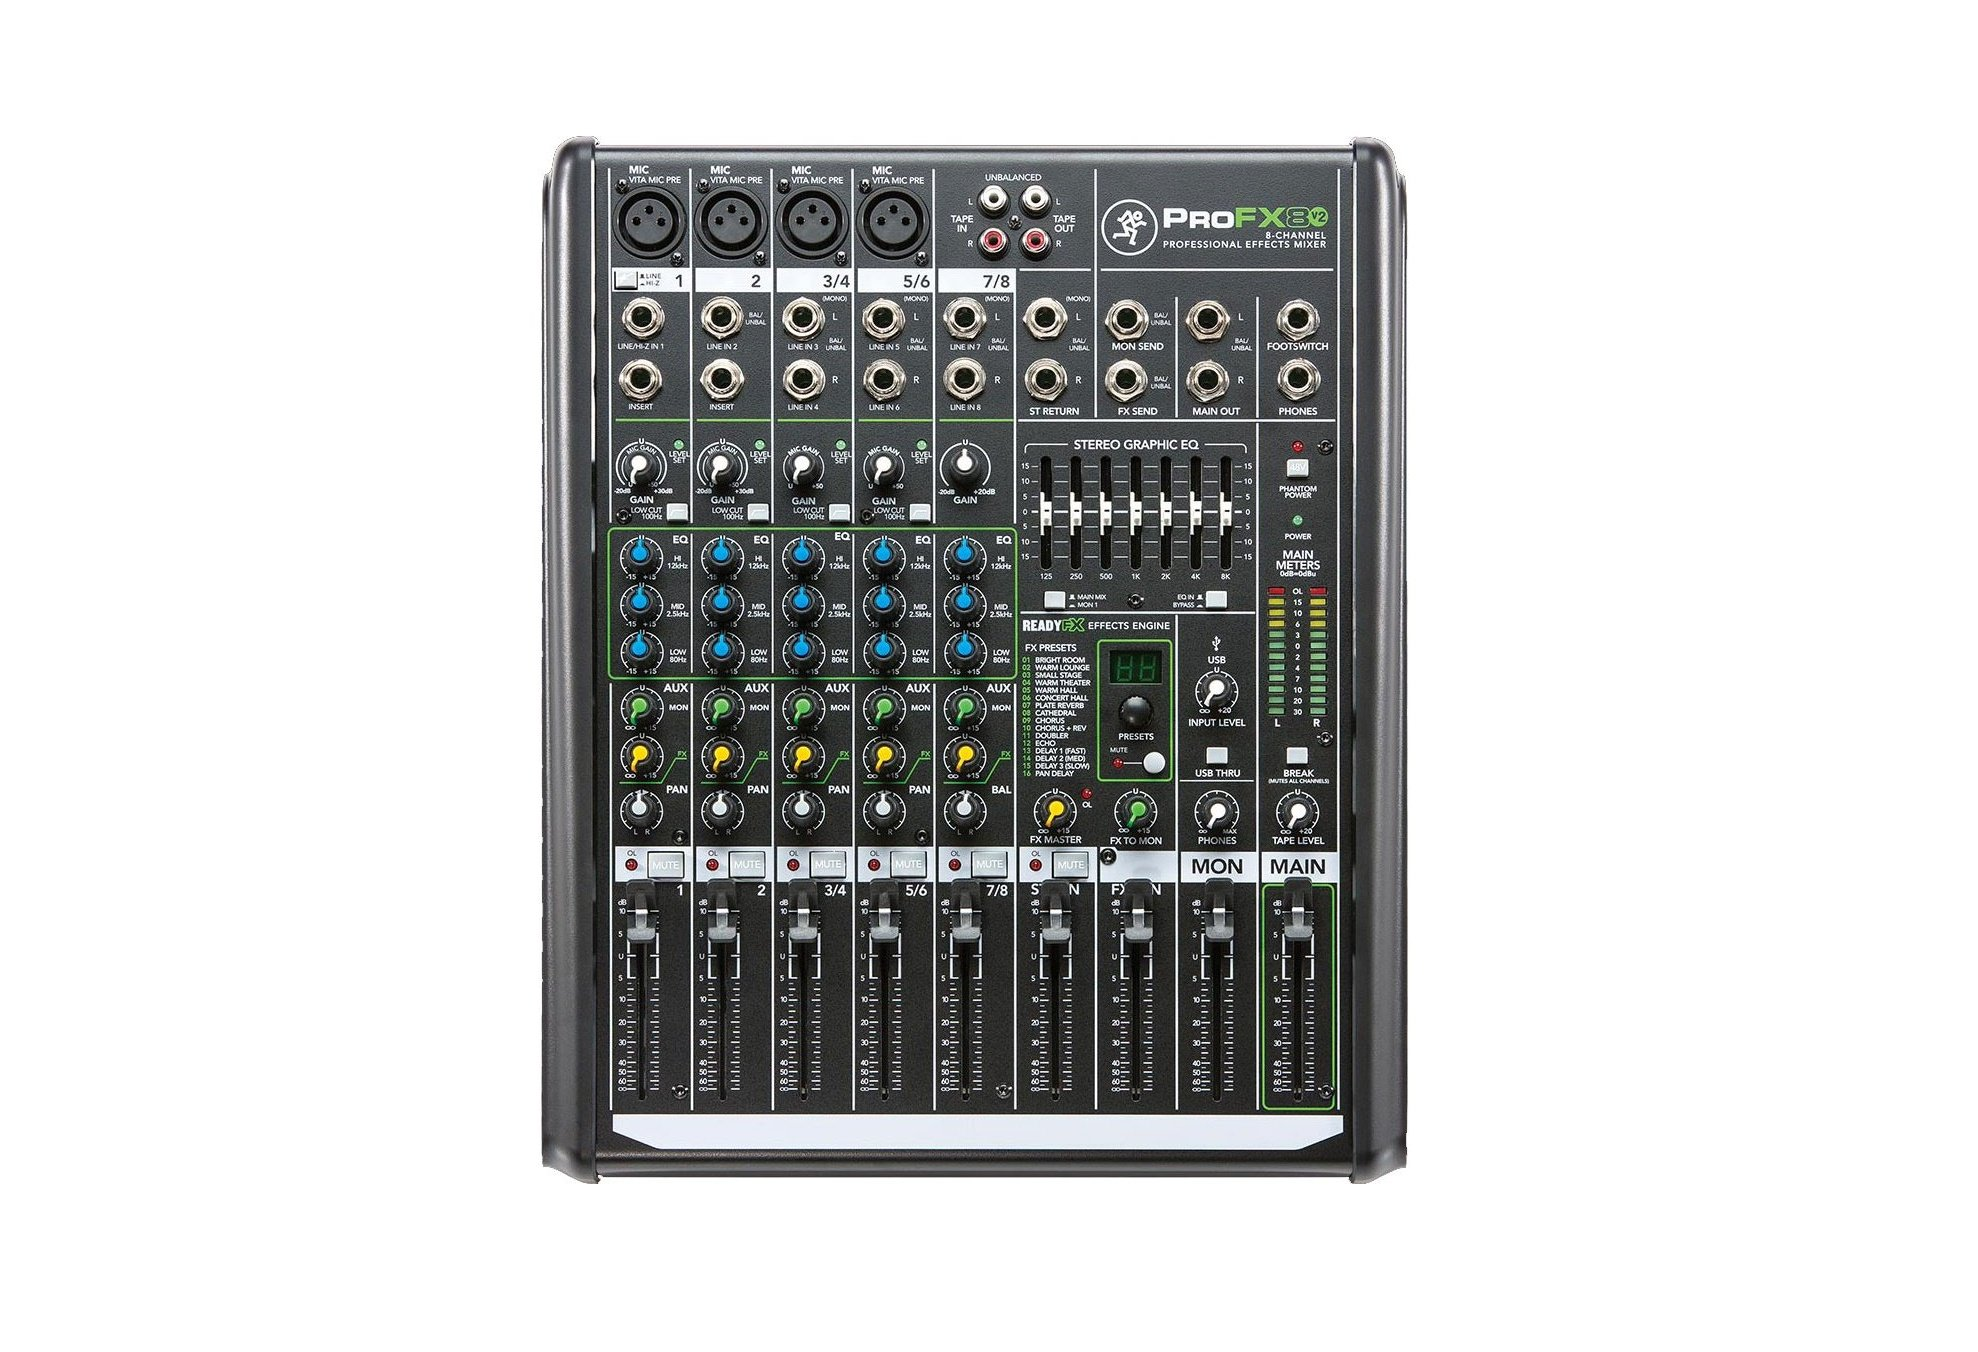 Mackie Pro FX8v2 Audio Line Mixer with USB, Effects